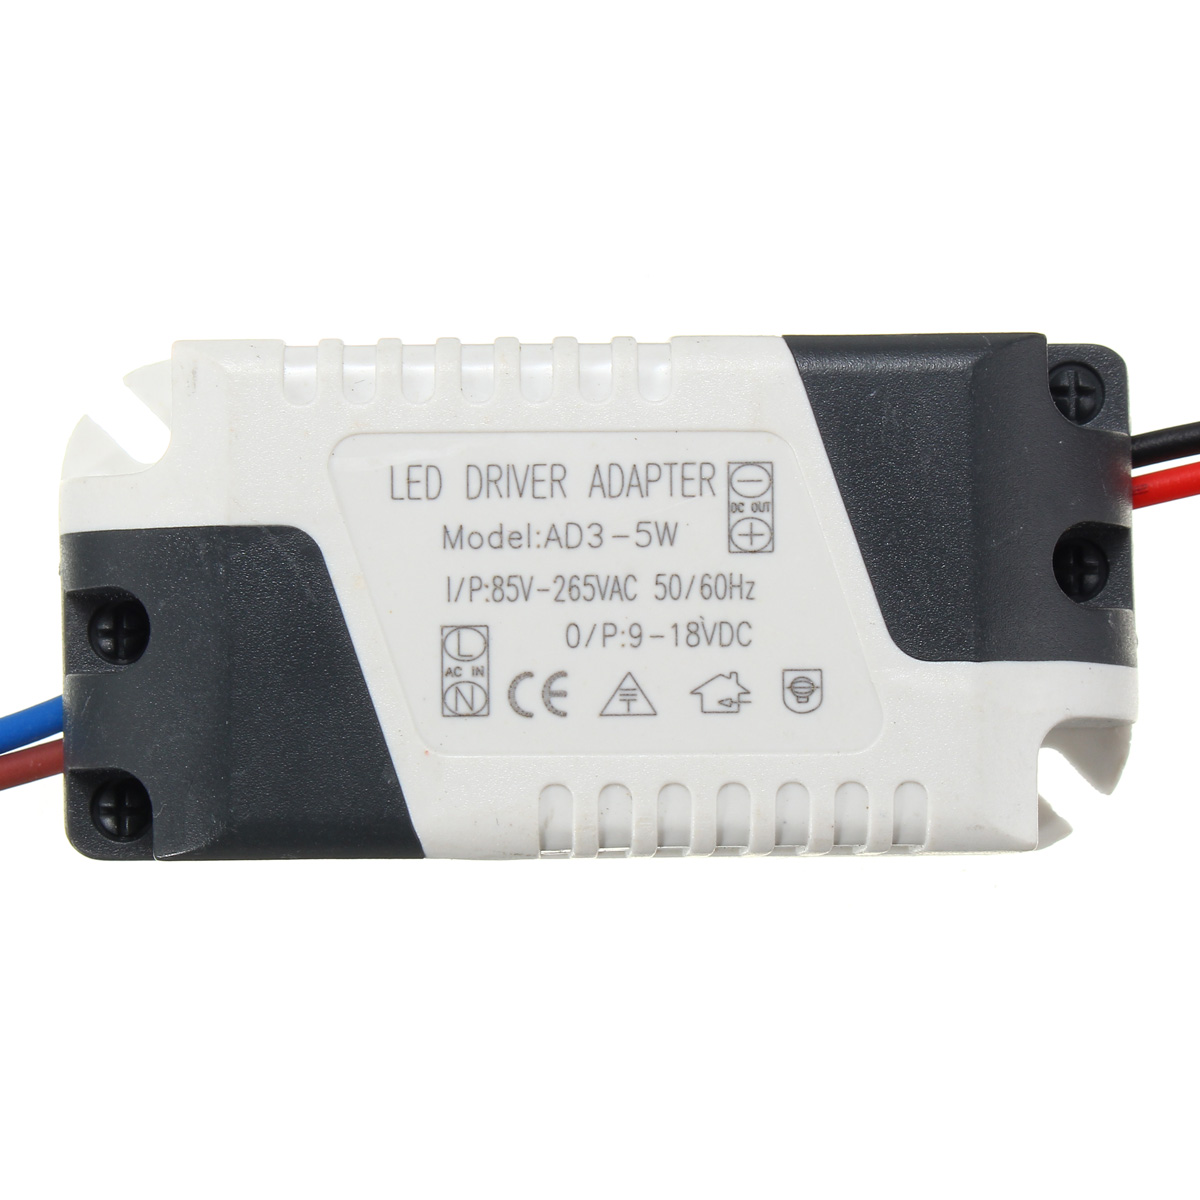 AC85-265V To DC9-18V 3-5W 300mA LED Light Lamp Driver Adapter Transformer Power Supply